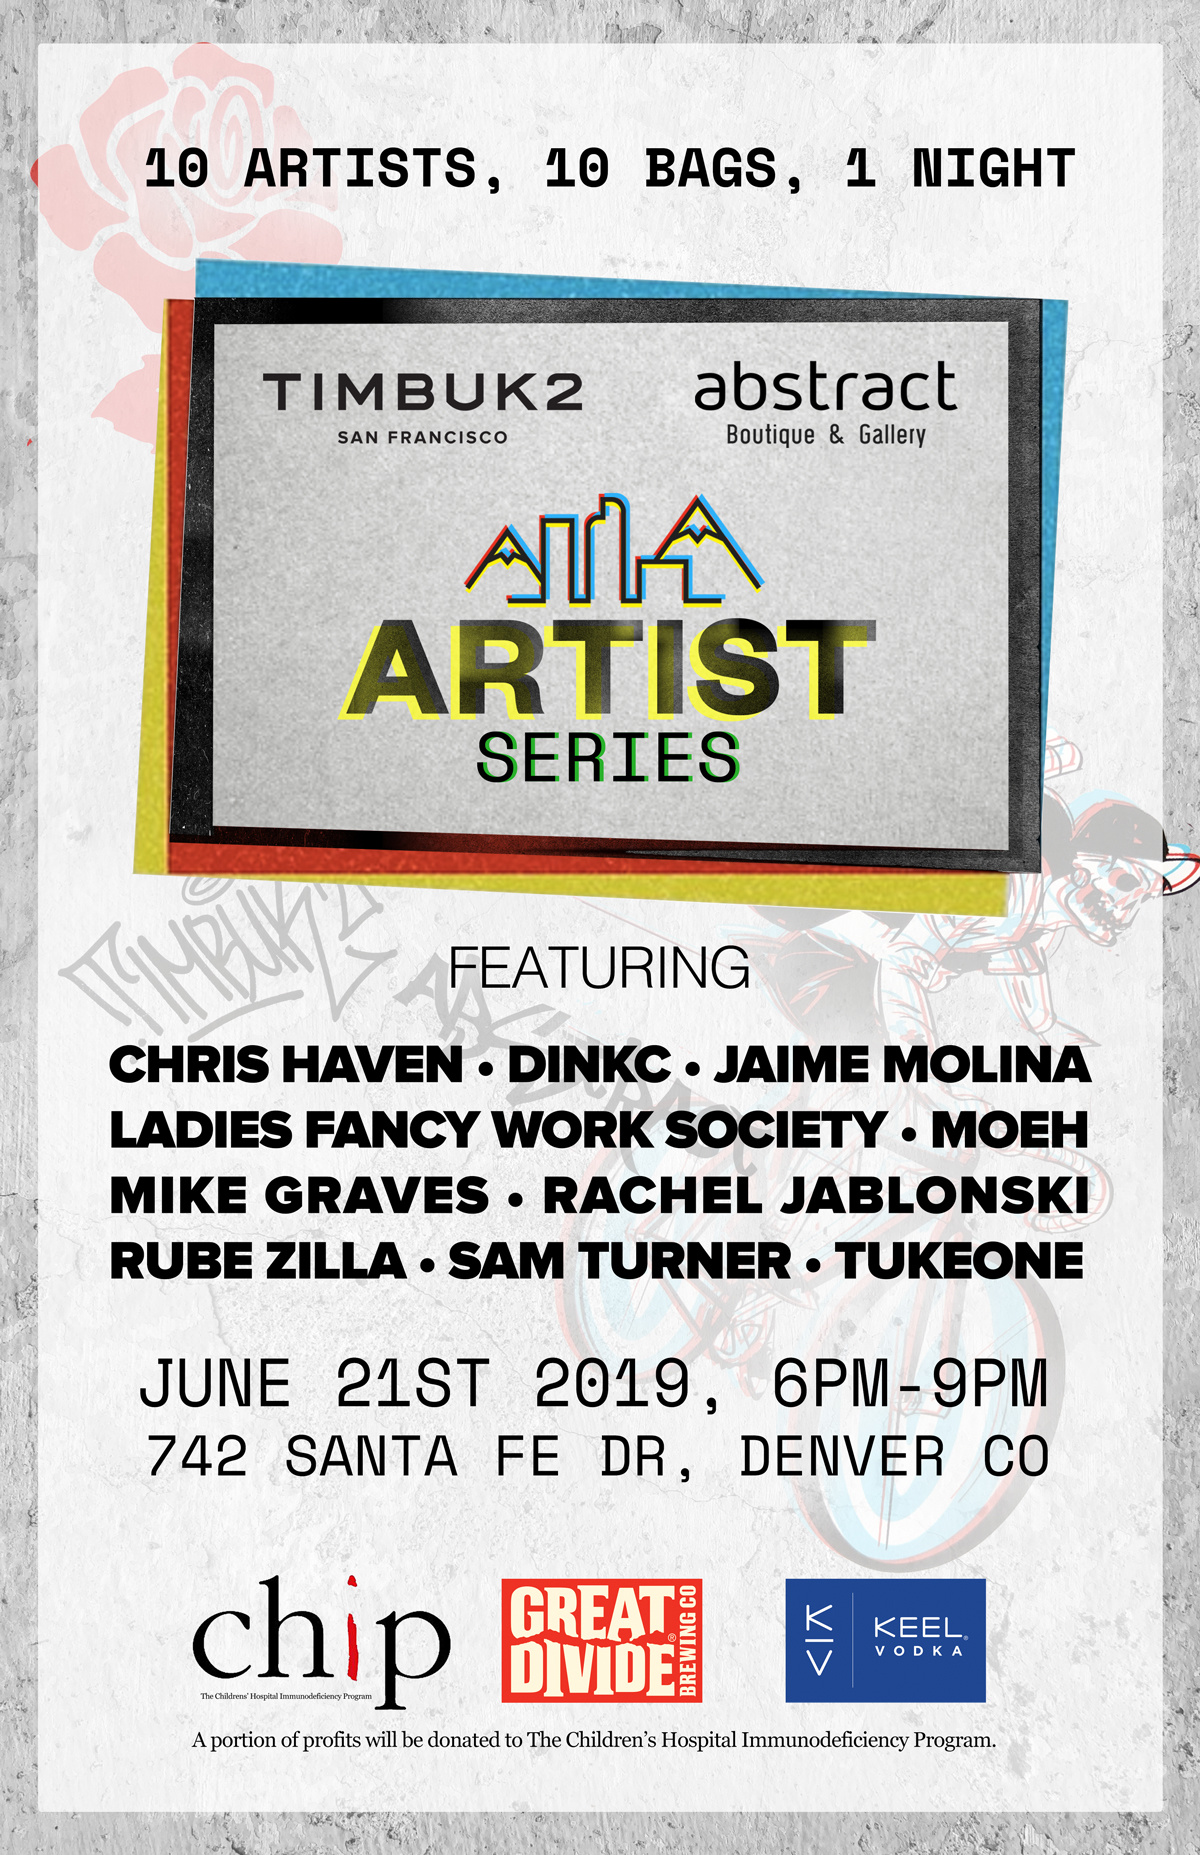 June 21st Timbuk2 bag show